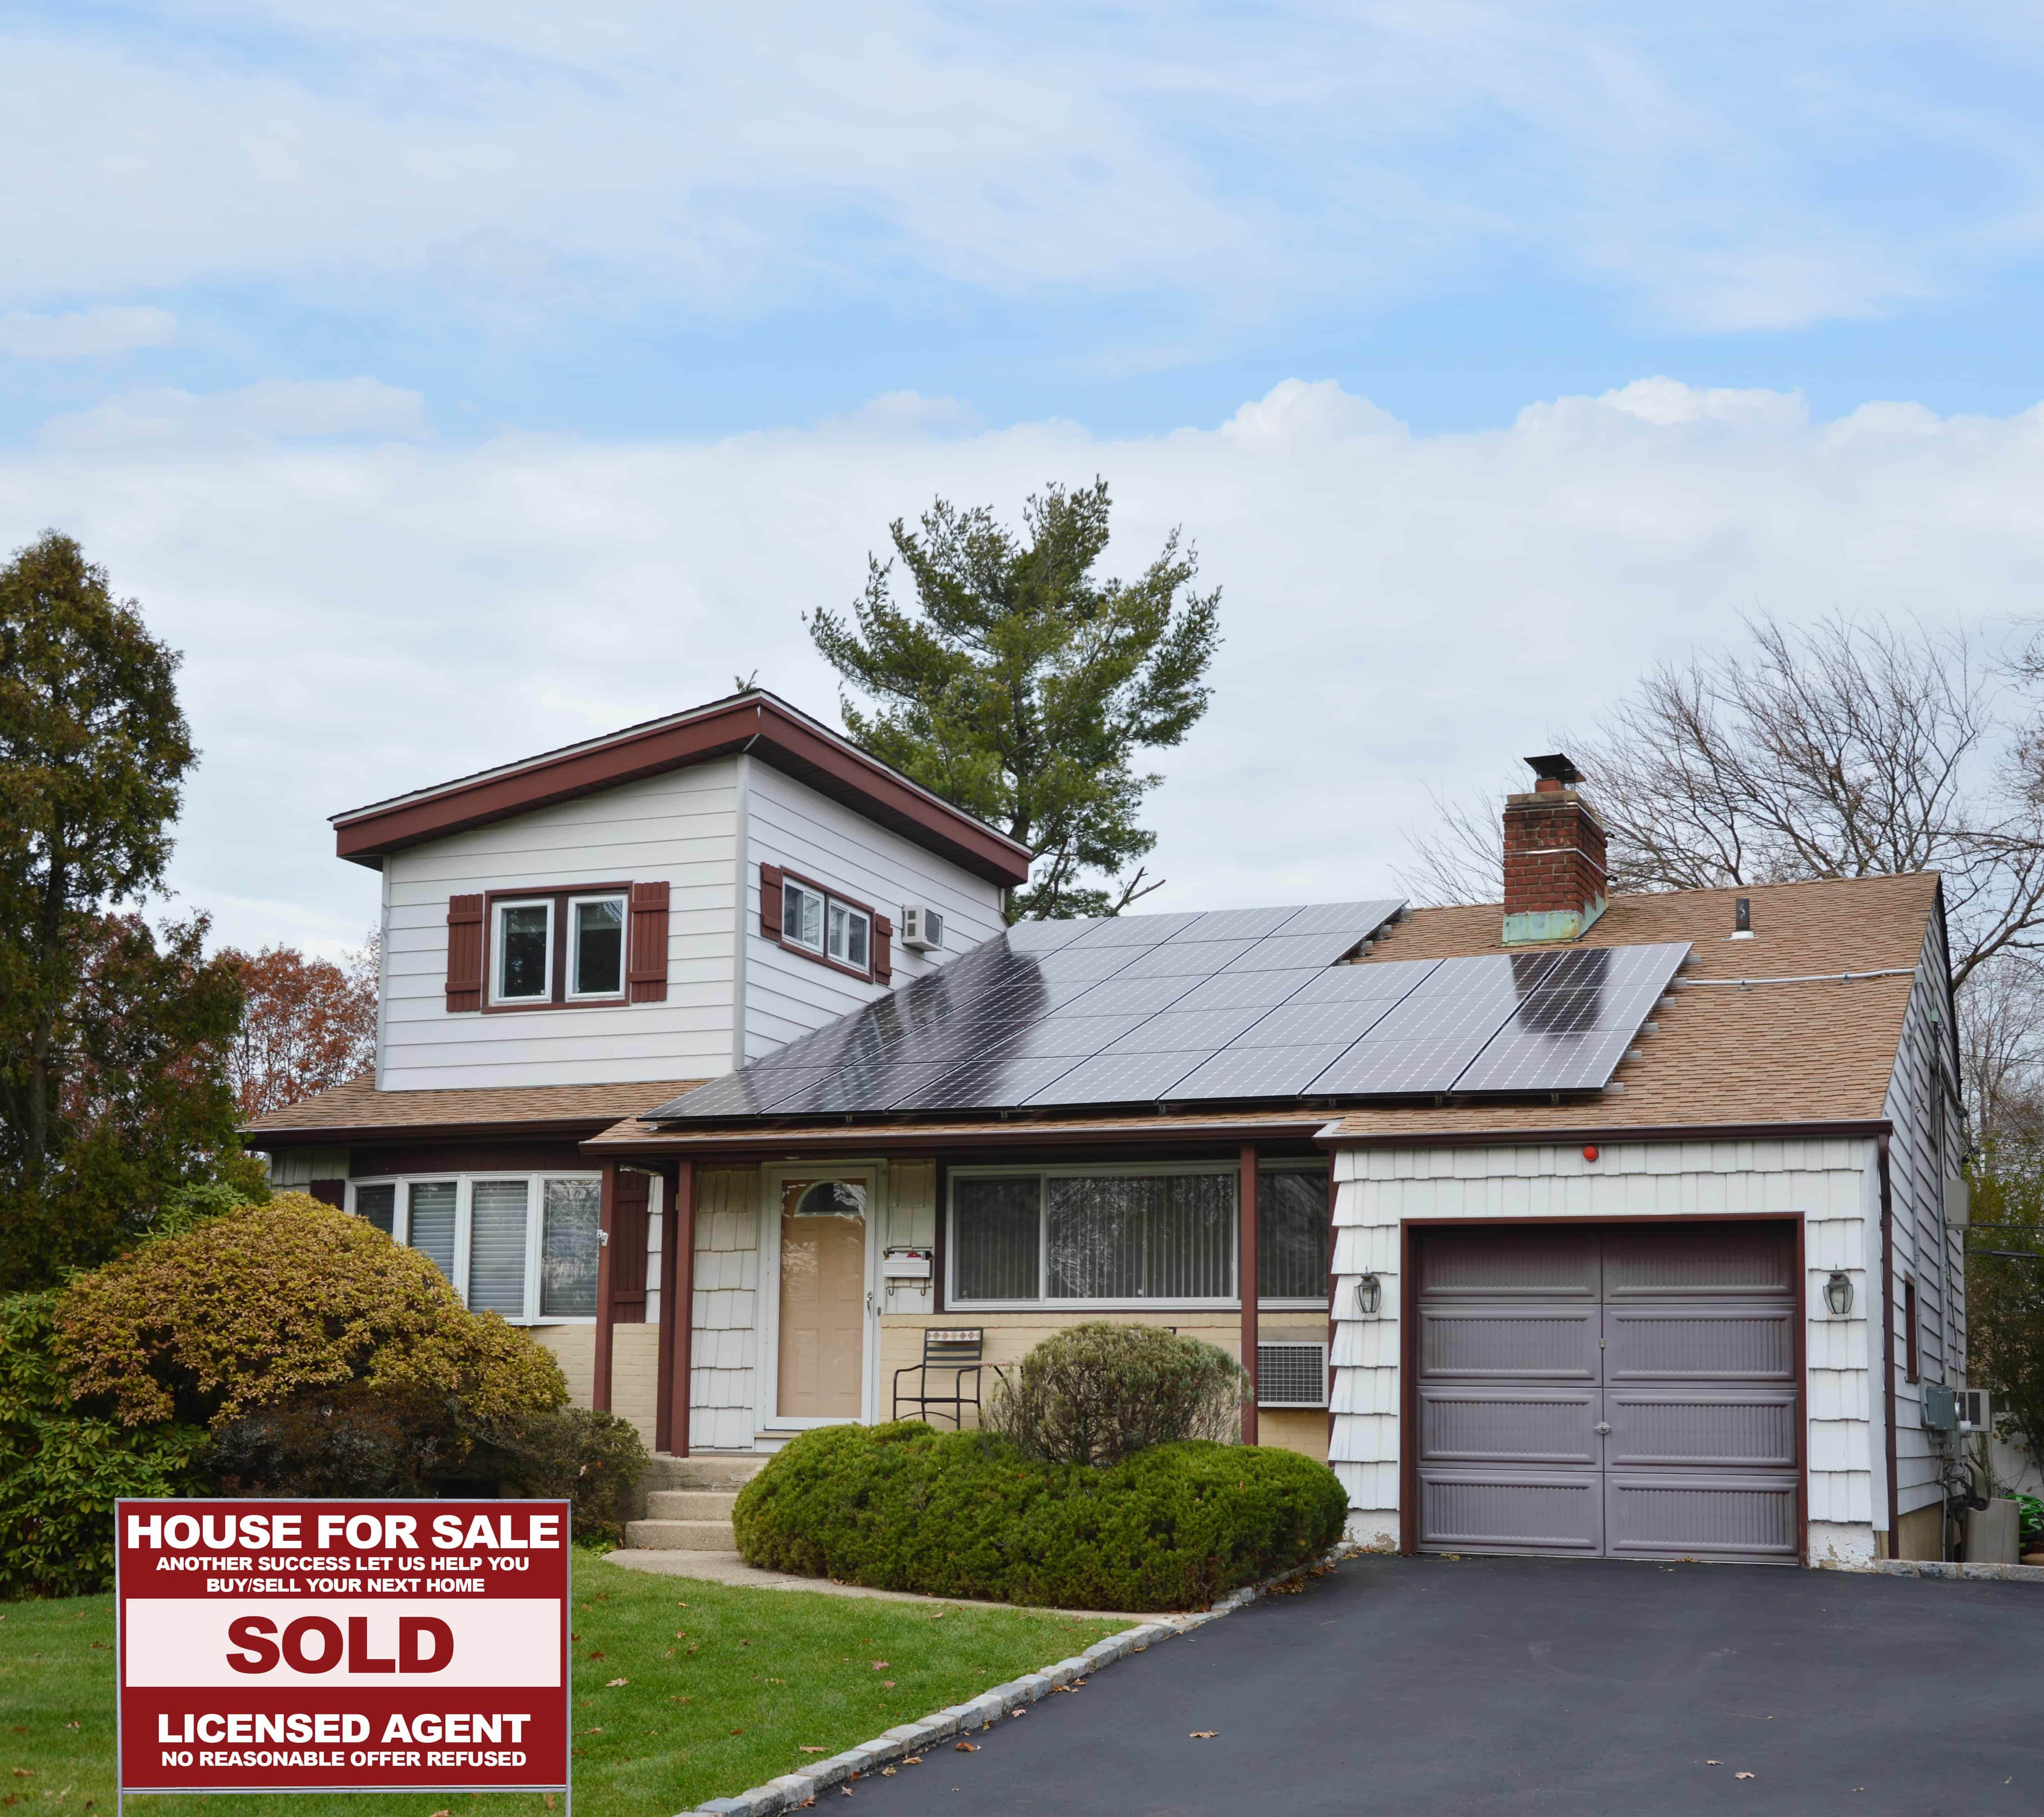 How to sell a home with solar panels